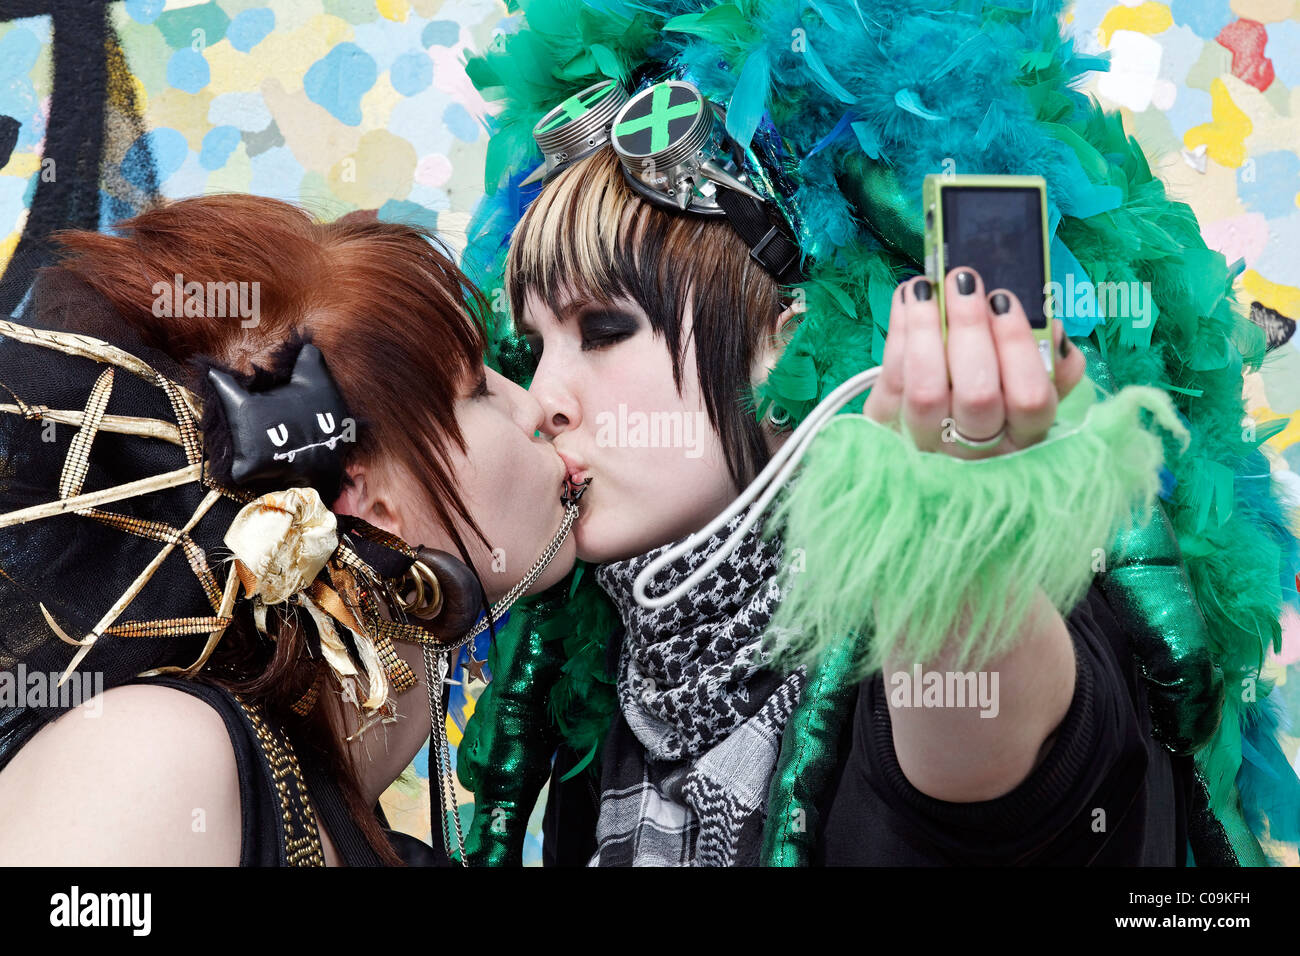 Two young women with bizarre headdress kissing and photographing themselves with their mobile phone, imaginative - Stock Image